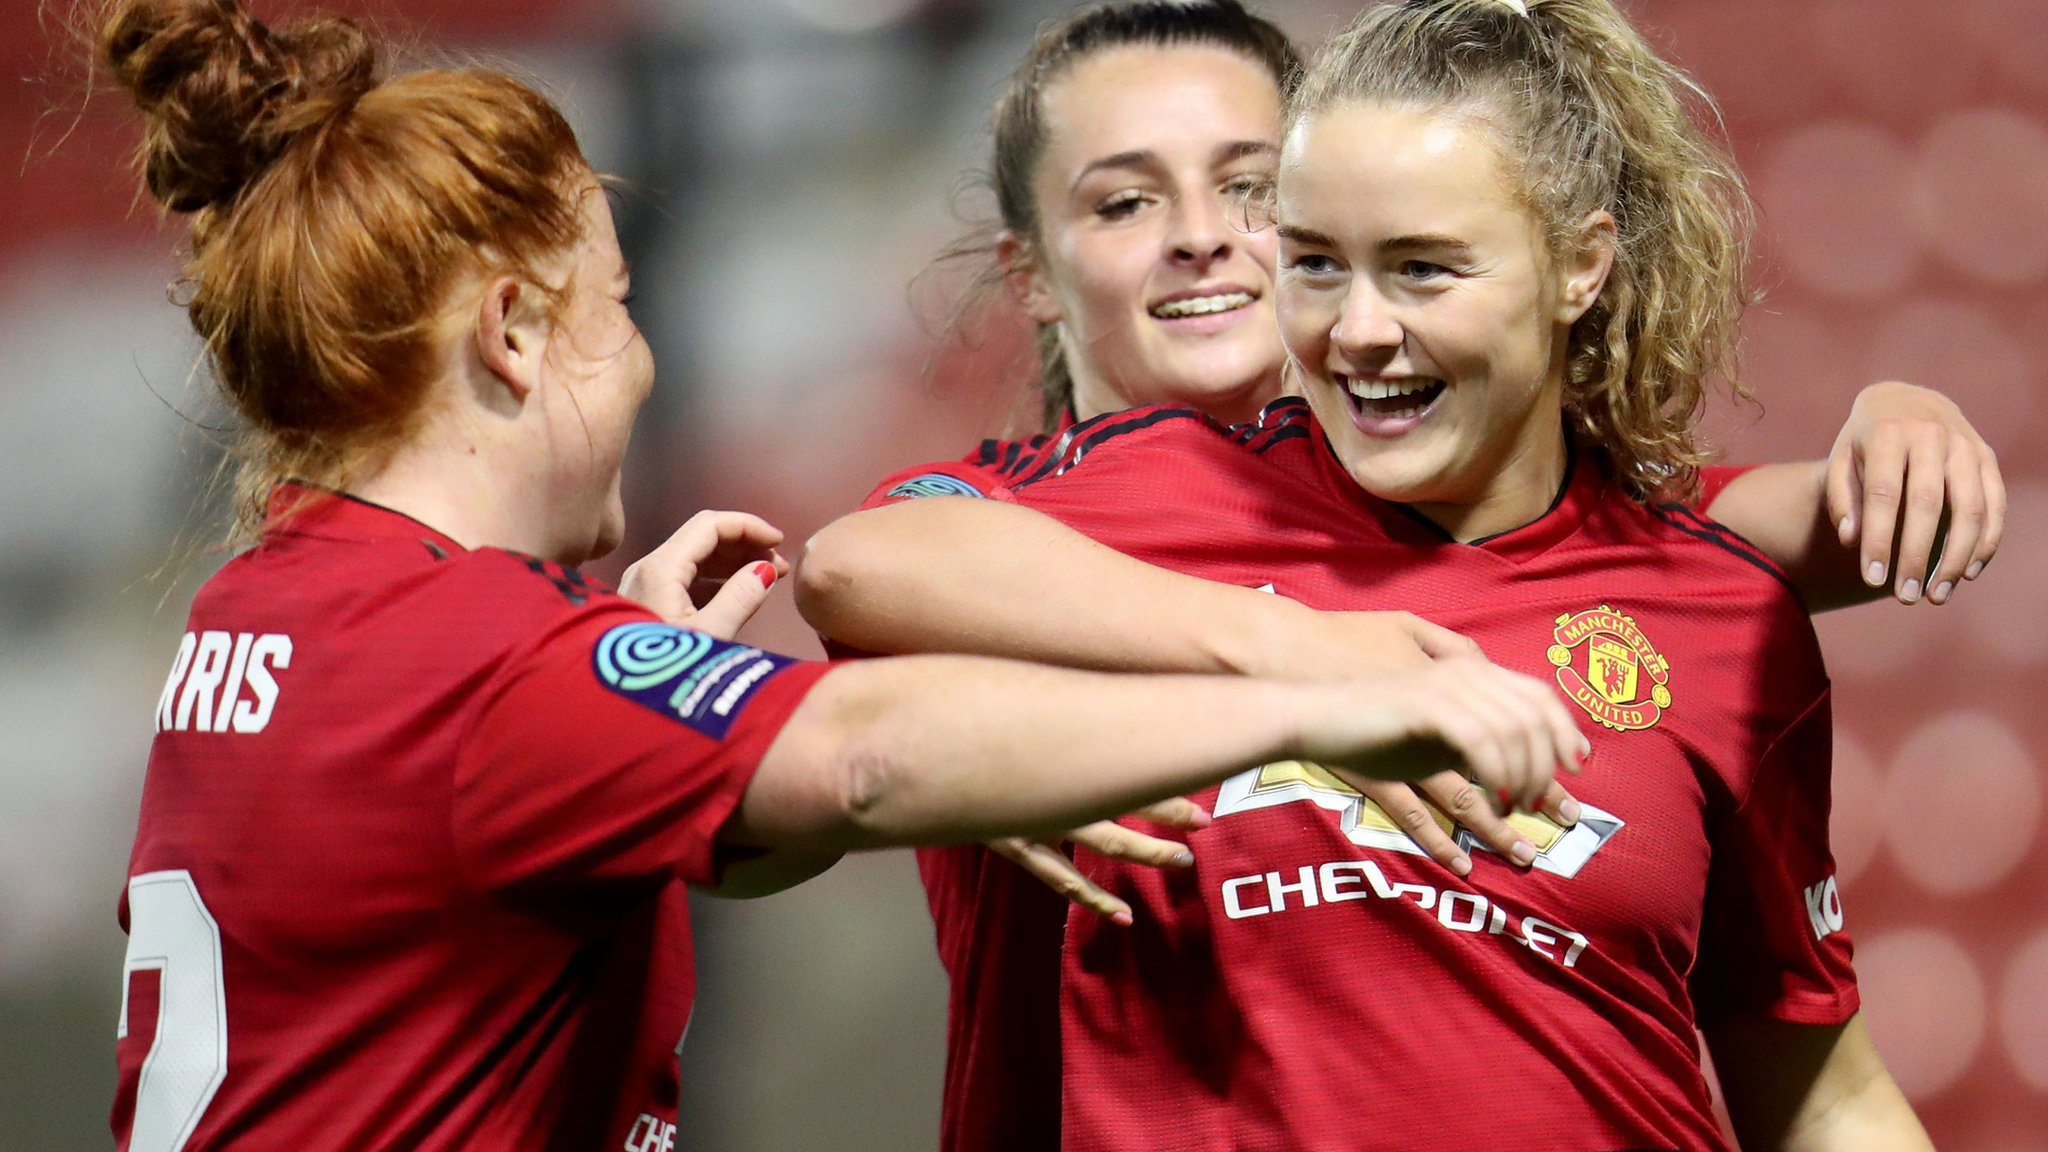 Man Utd Women could play at Old Trafford after promotion to top flight